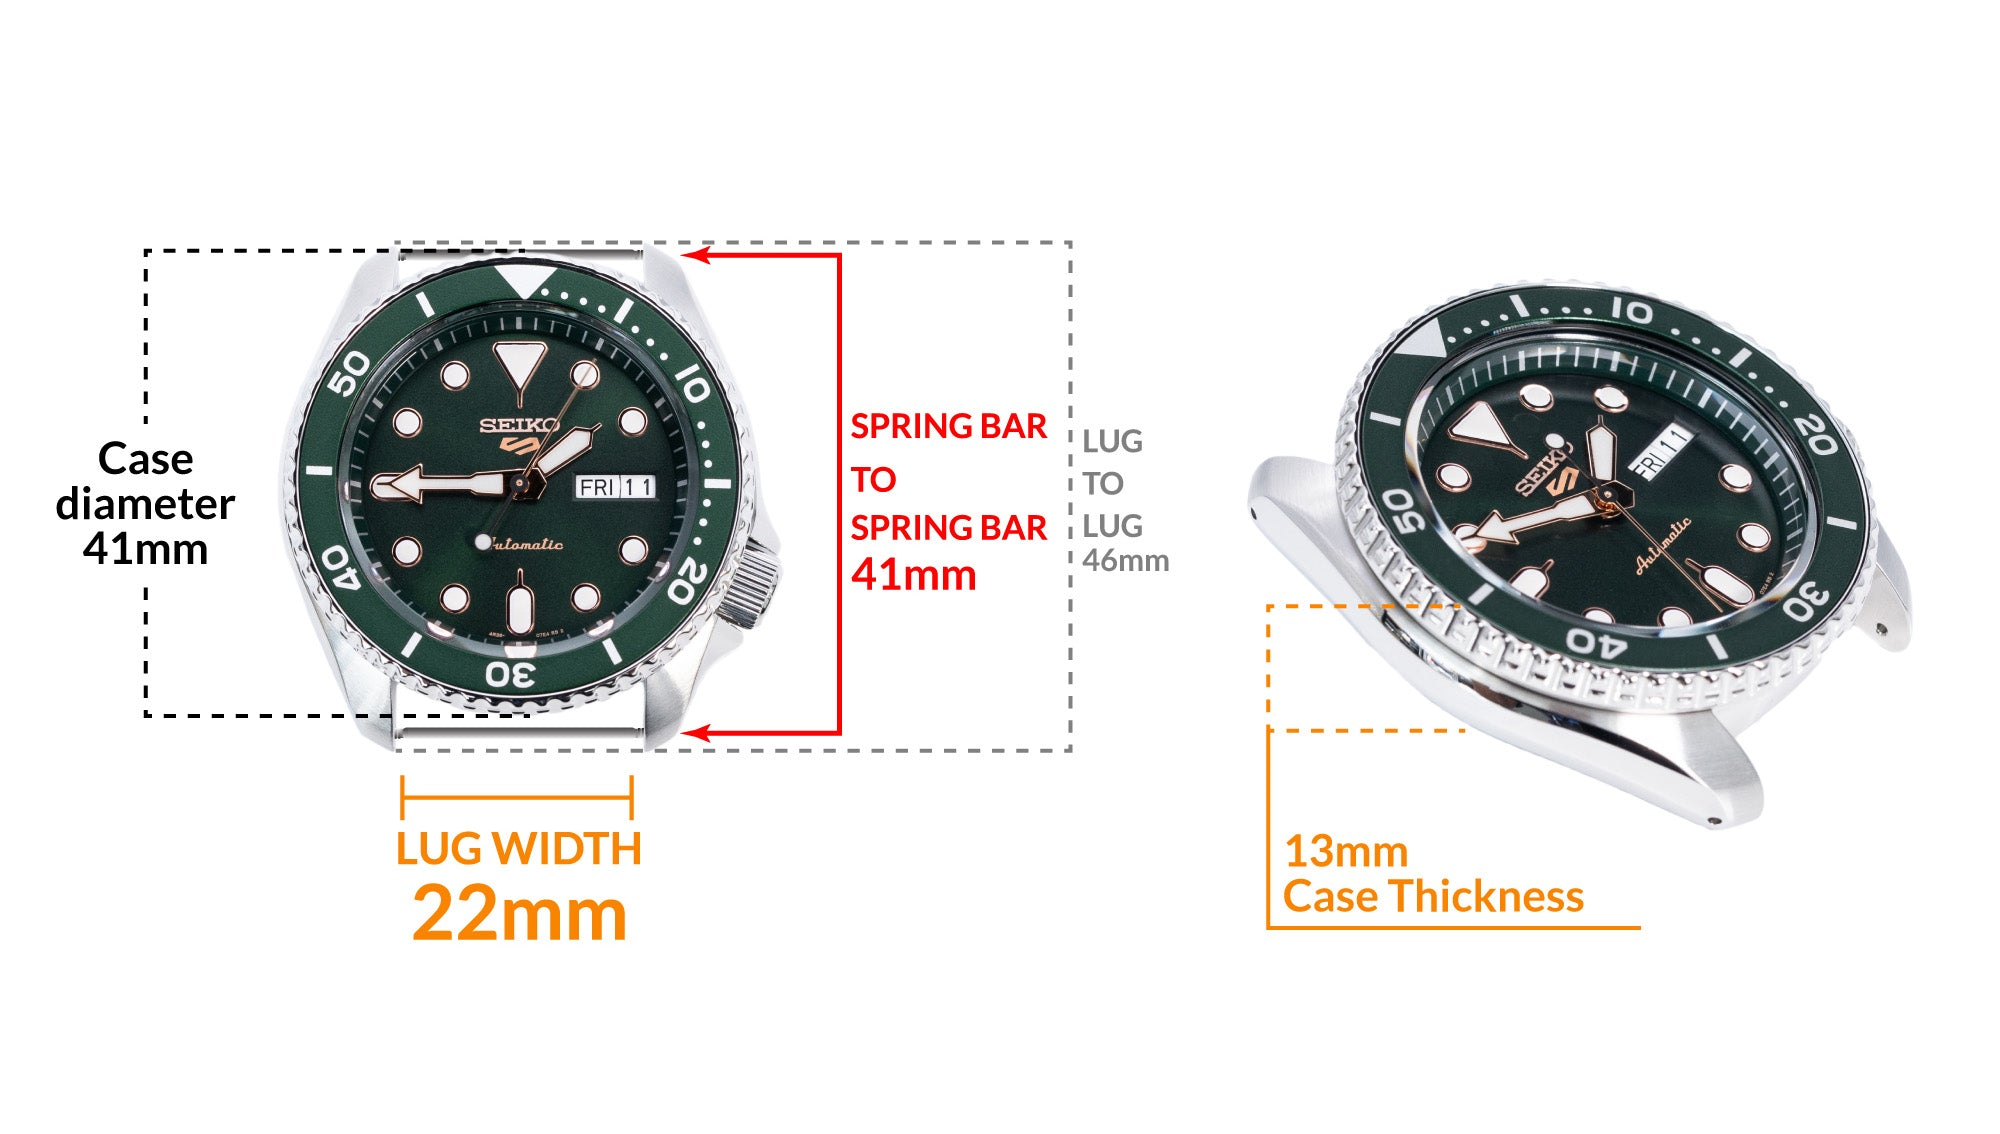 Seiko 5 Sports SRPD63K1 Green - Details watch case measurement and dimensions